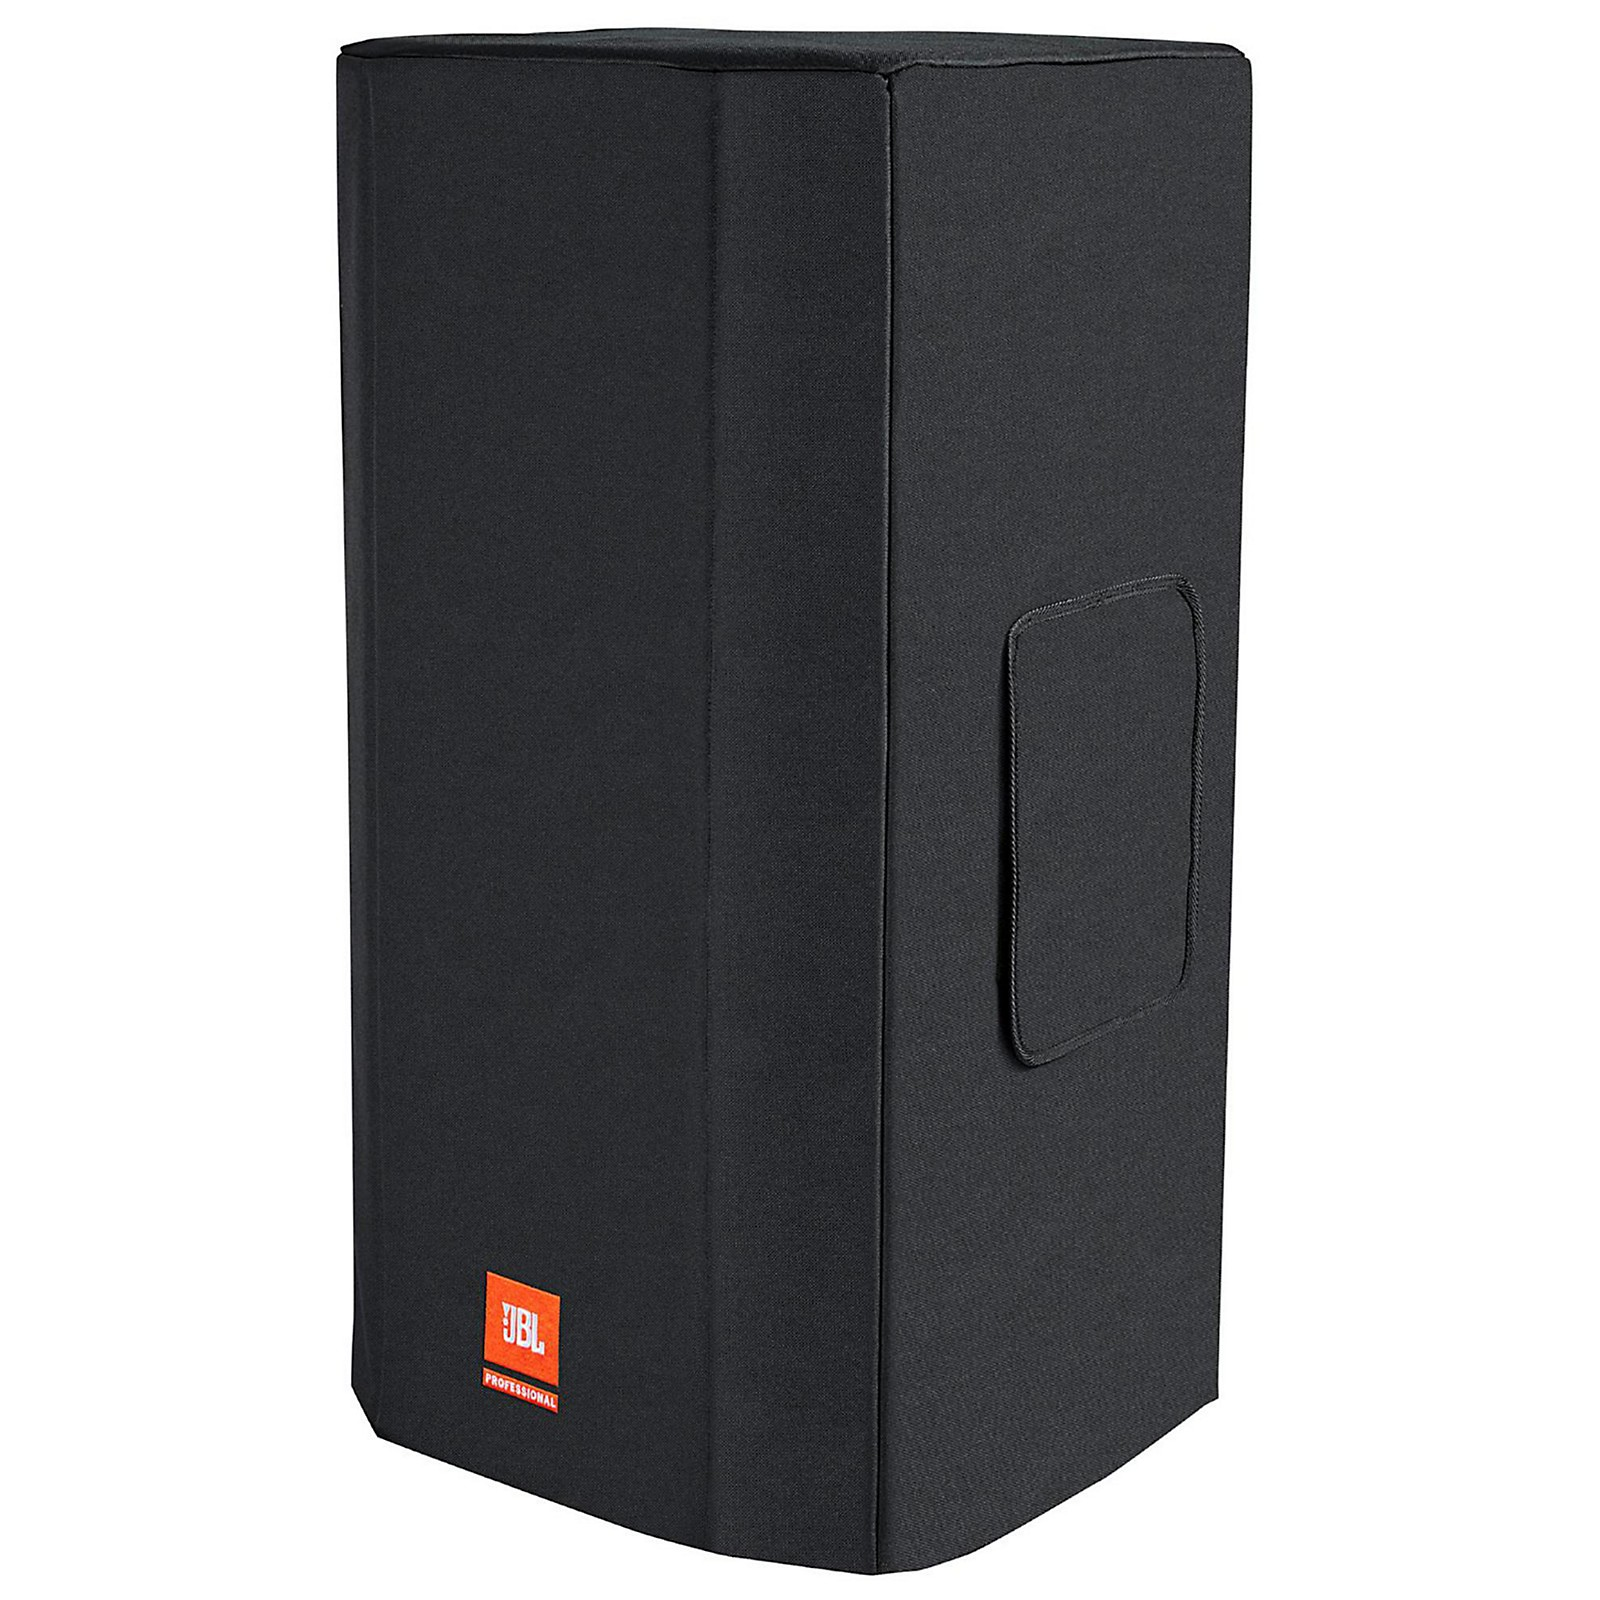 JBL Bag Deluxe Padded Cover for SRX835 and SRX835P